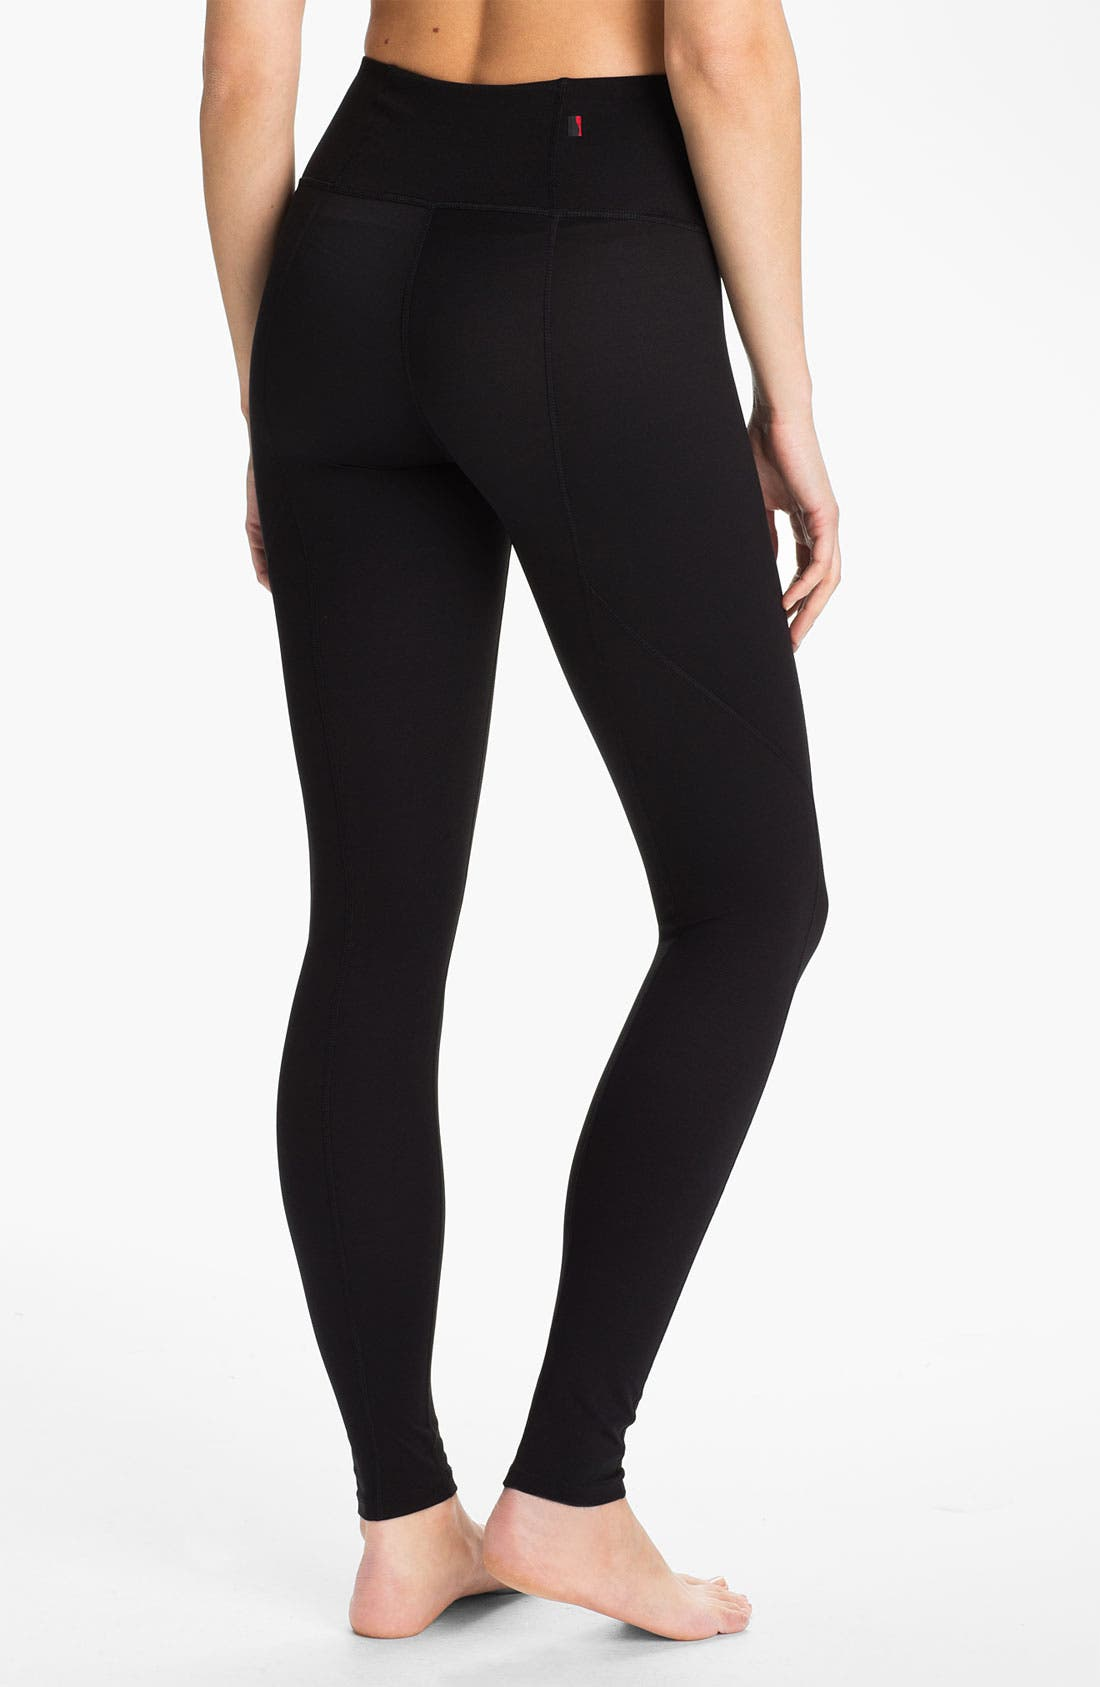 Shaping Compression Activewear Leggings,                             Alternate thumbnail 2, color,                             010